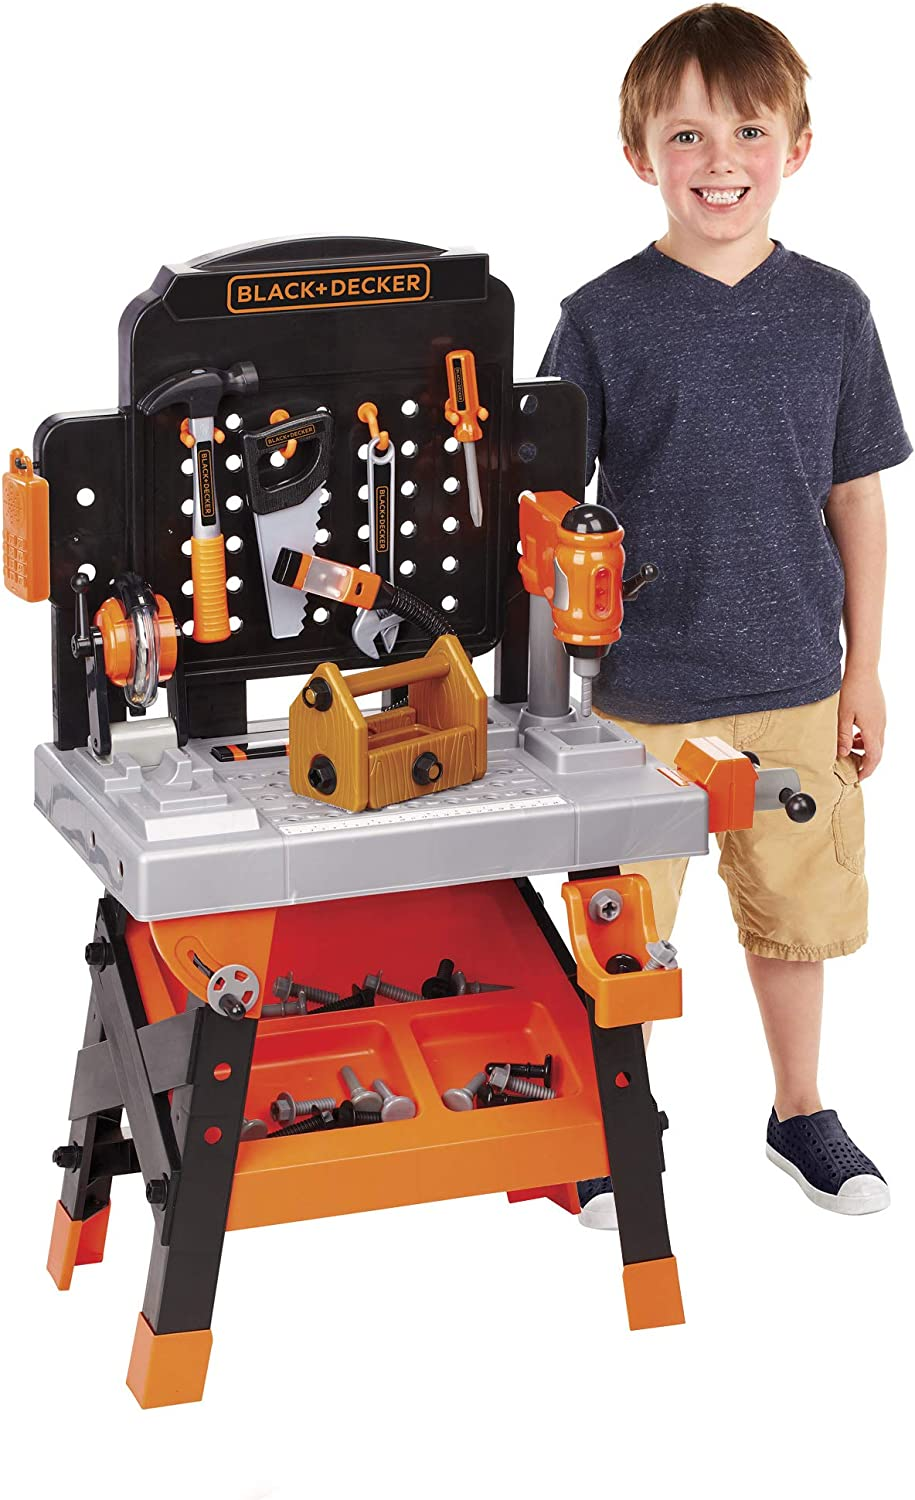 Black and Decker Junior Tool Workbench/